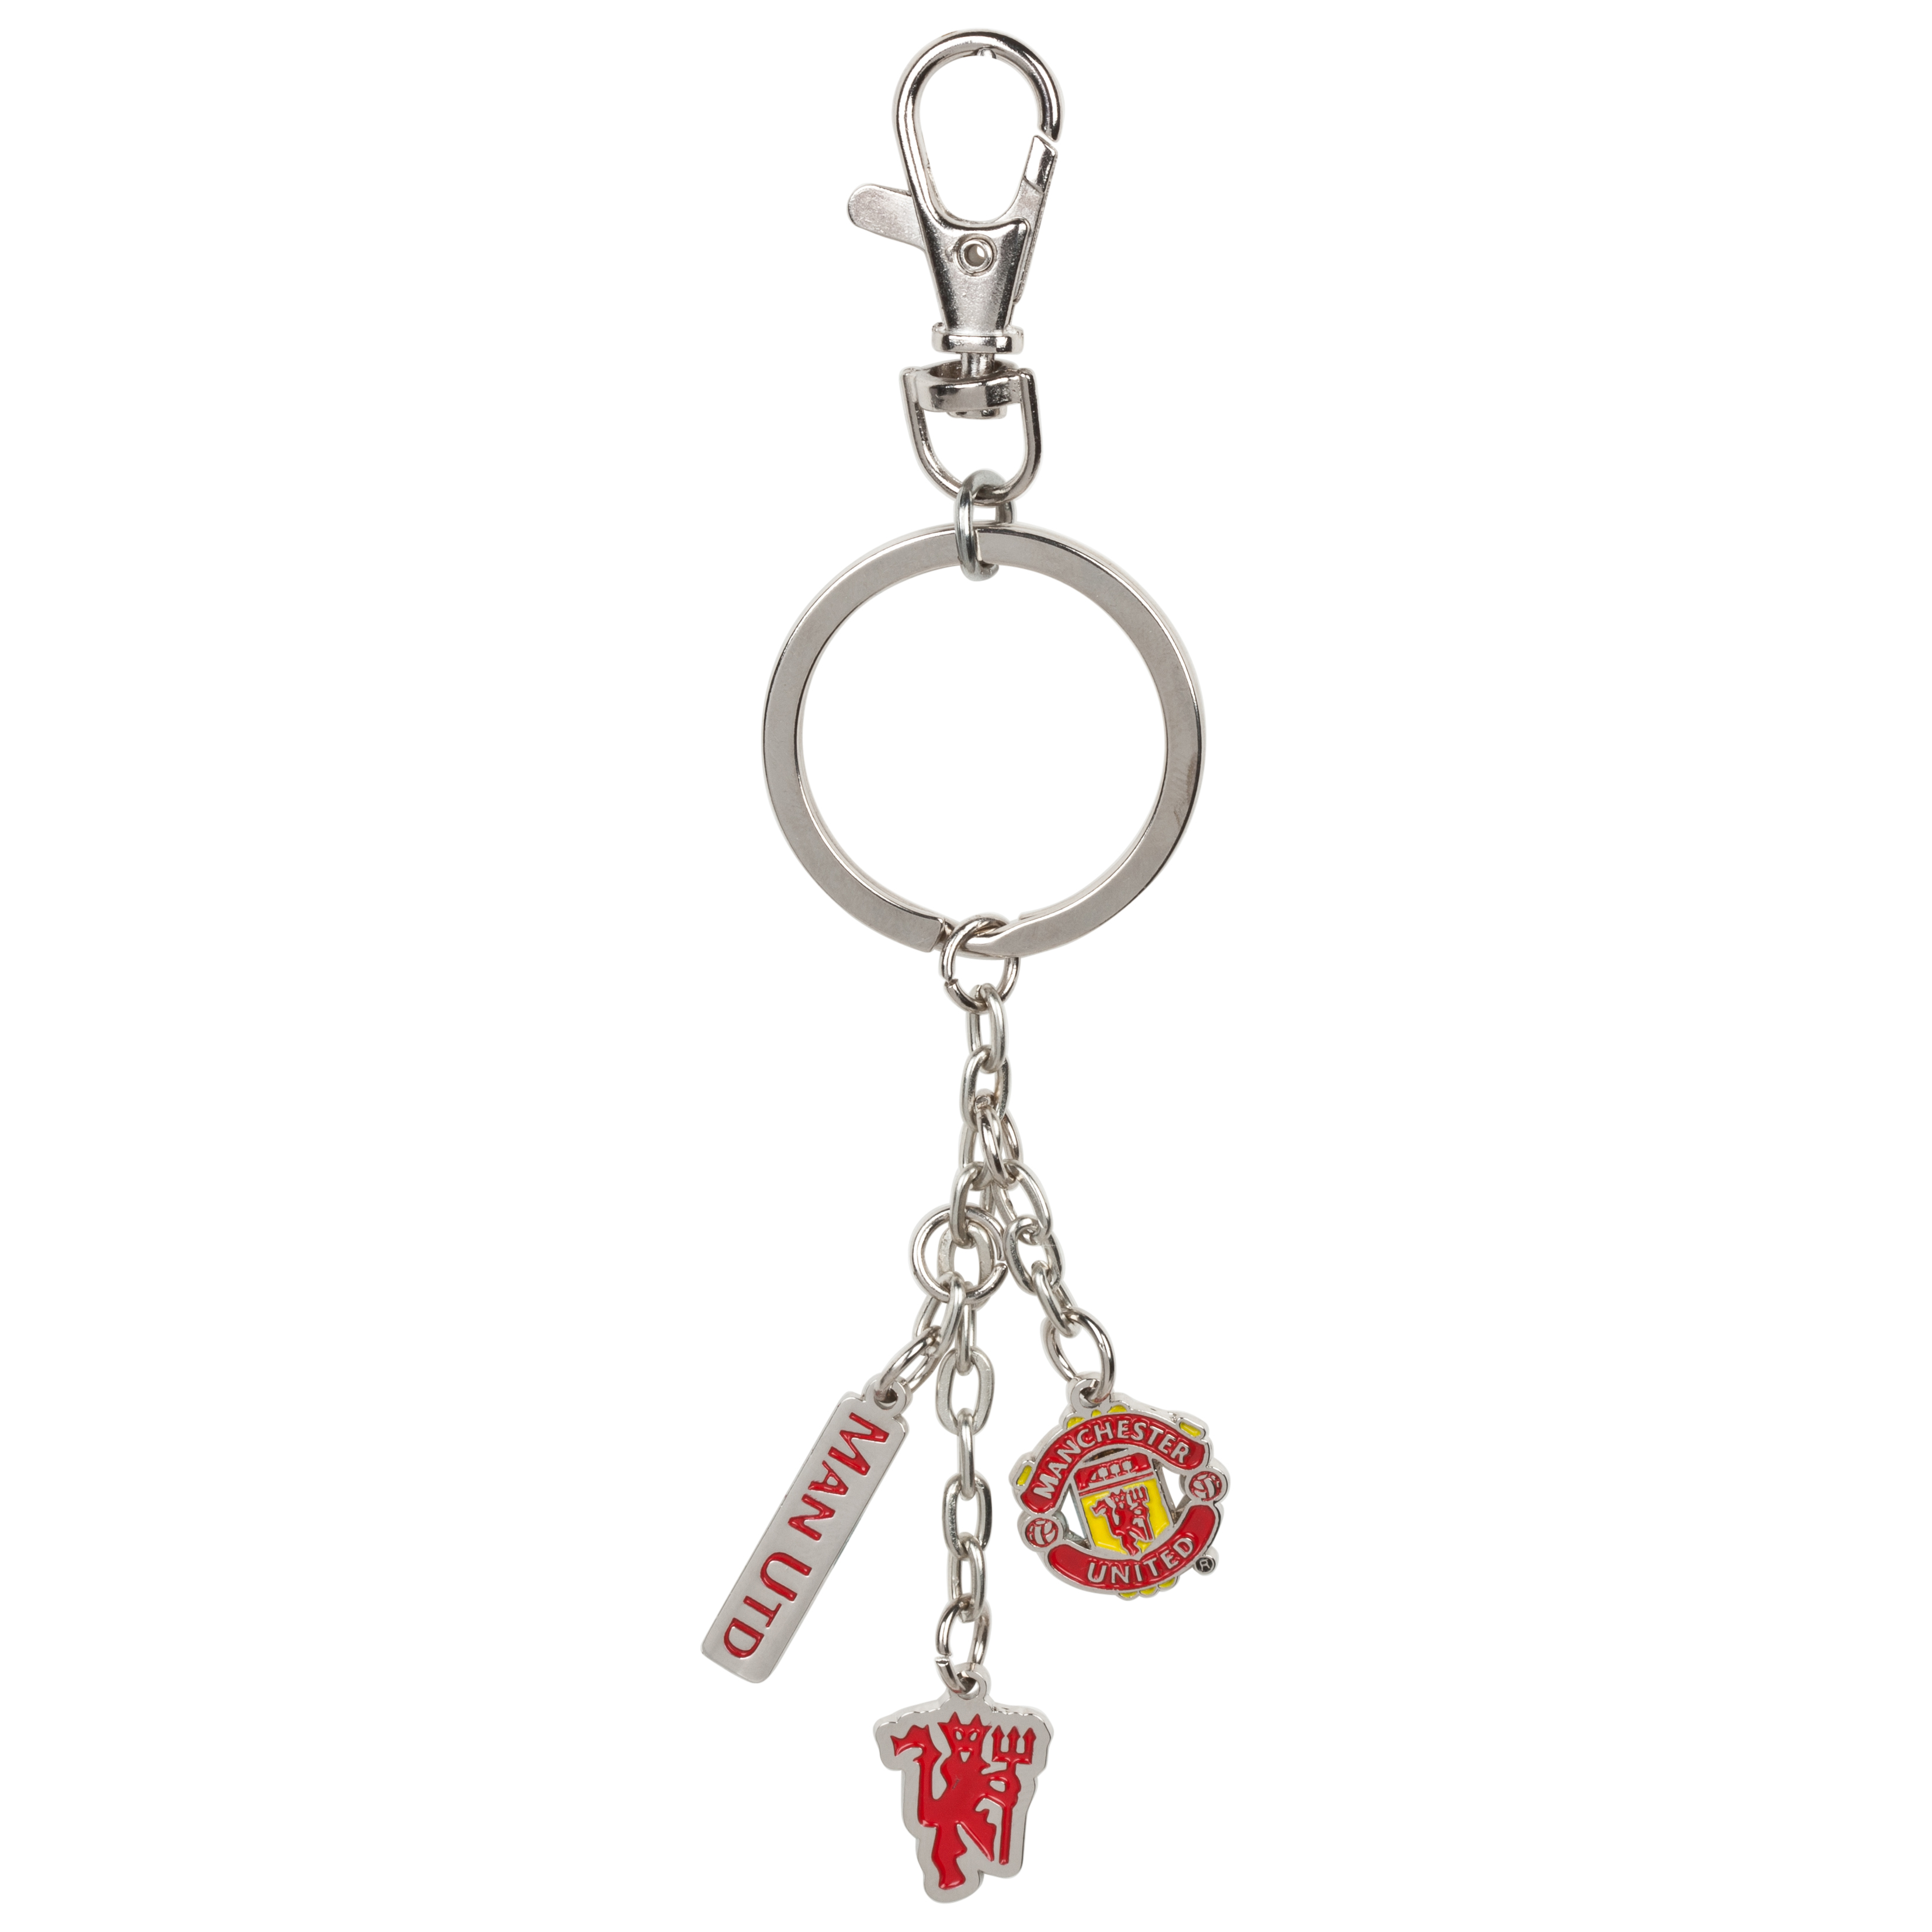 Manchester United 3 Piece Charm Key Ring